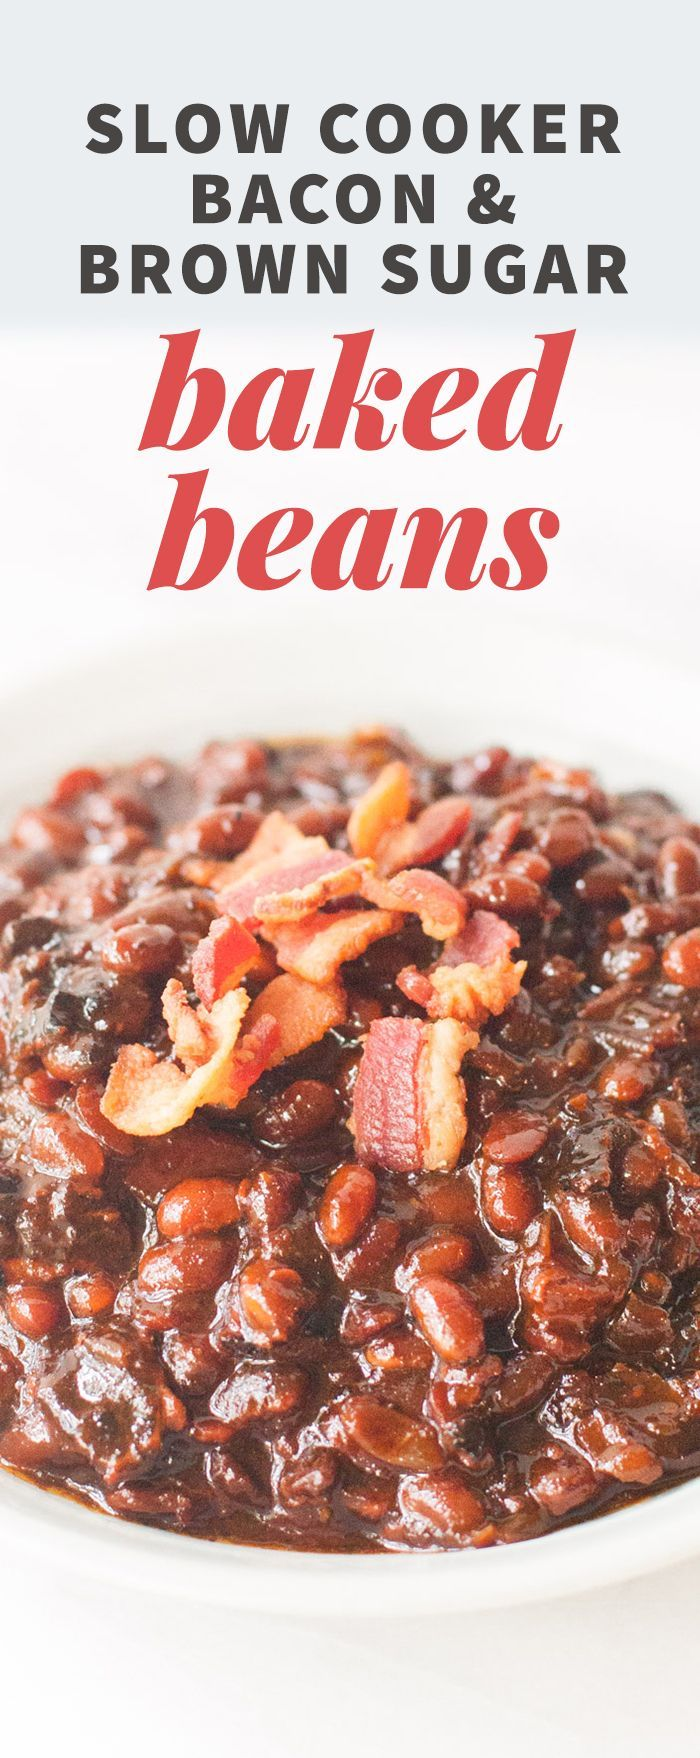 Slow Cooker Bacon & Brown Sugar Baked Beans (Sponsored Partnership) #CrockPotRecipes #sponsored @Crockpot